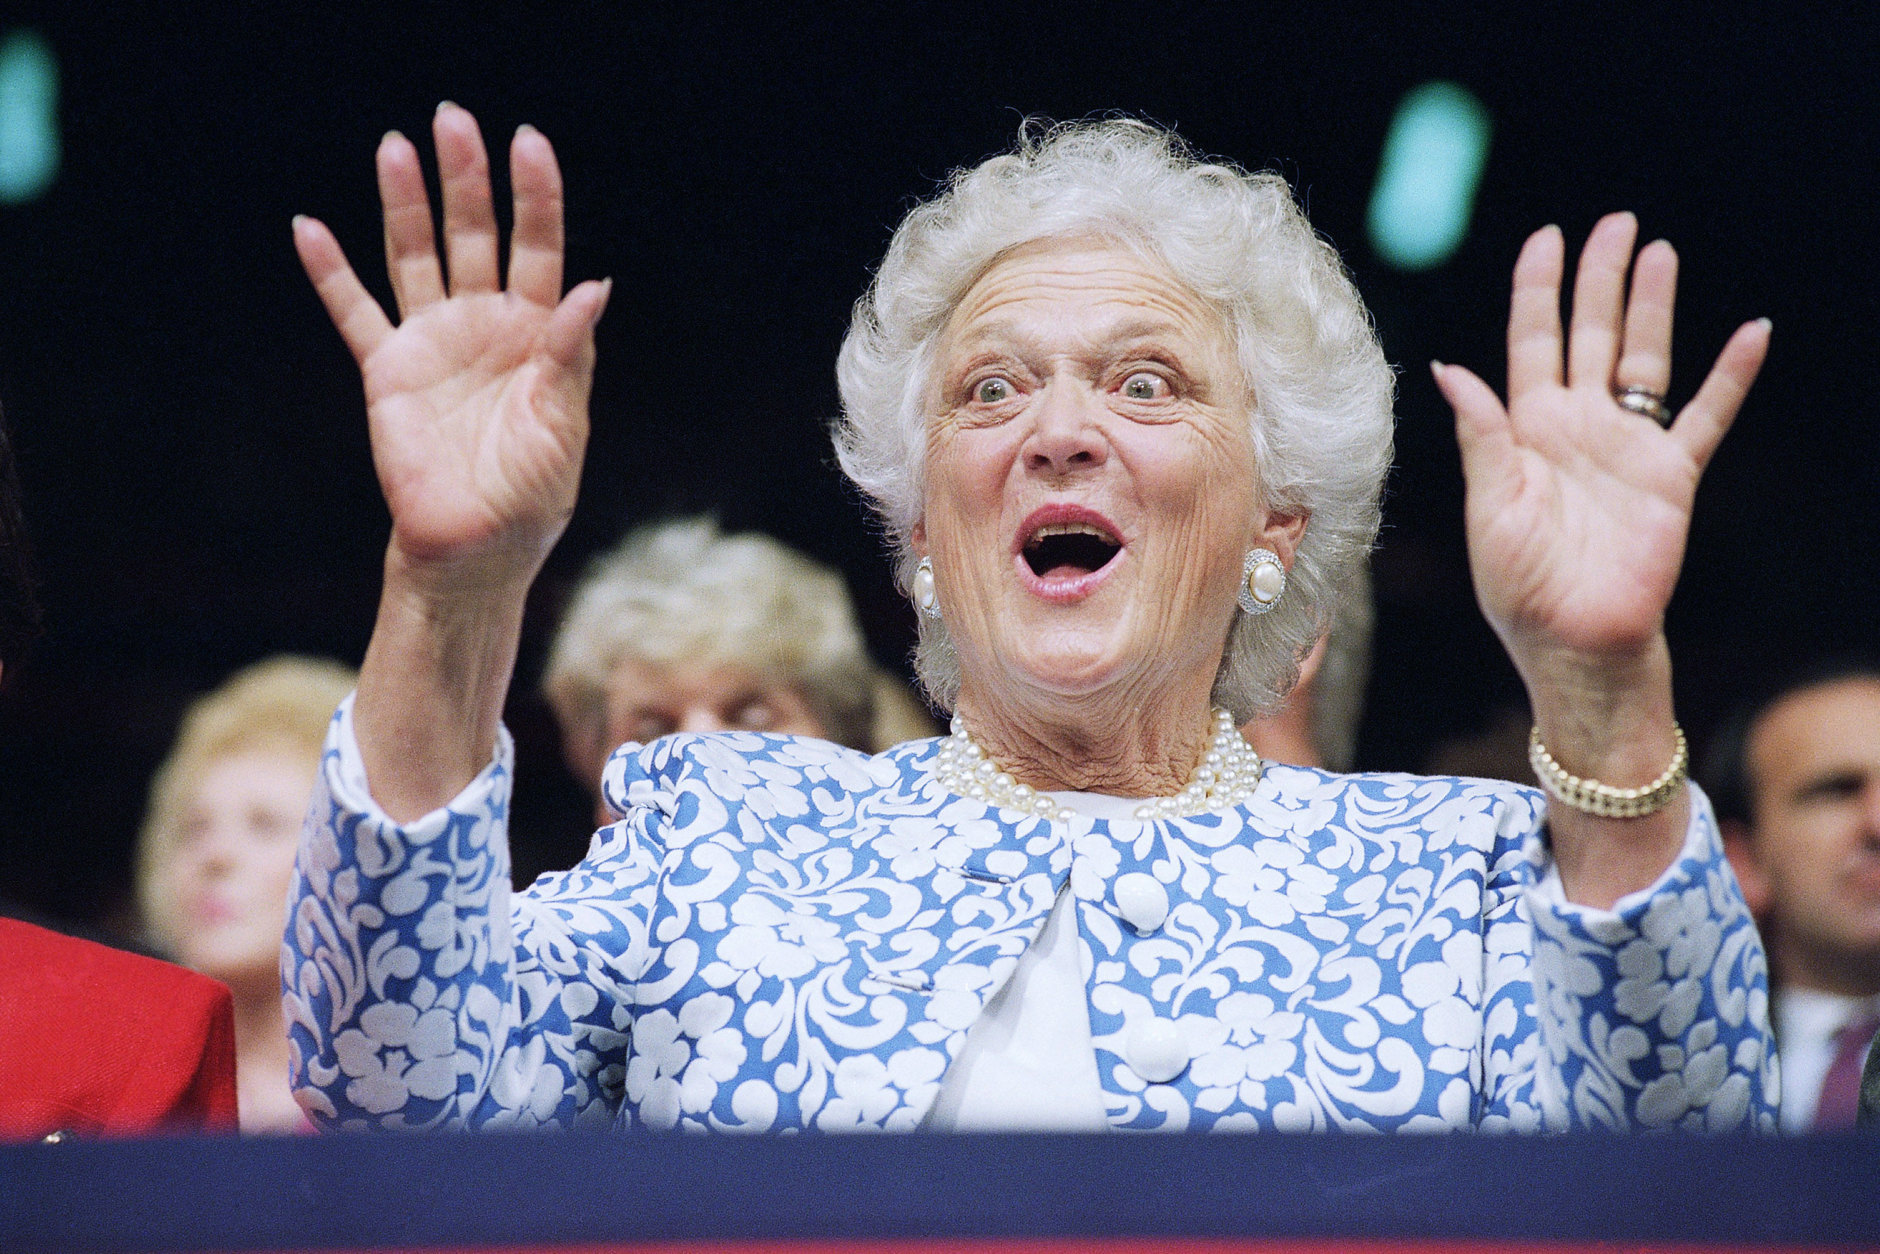 """First Lady Barbara Bush reacts to Sen. Phil Gramm, who delivered the keynote address to the Republican National Convention at the Houston Astrodome, Tuesday, Aug. 18, 1992, Houston, Tex. Gramm derided Democratic candidate Bill Clinton's economic program as a """"Lemon for America."""" (AP Photo/Marcy Nighswander)"""